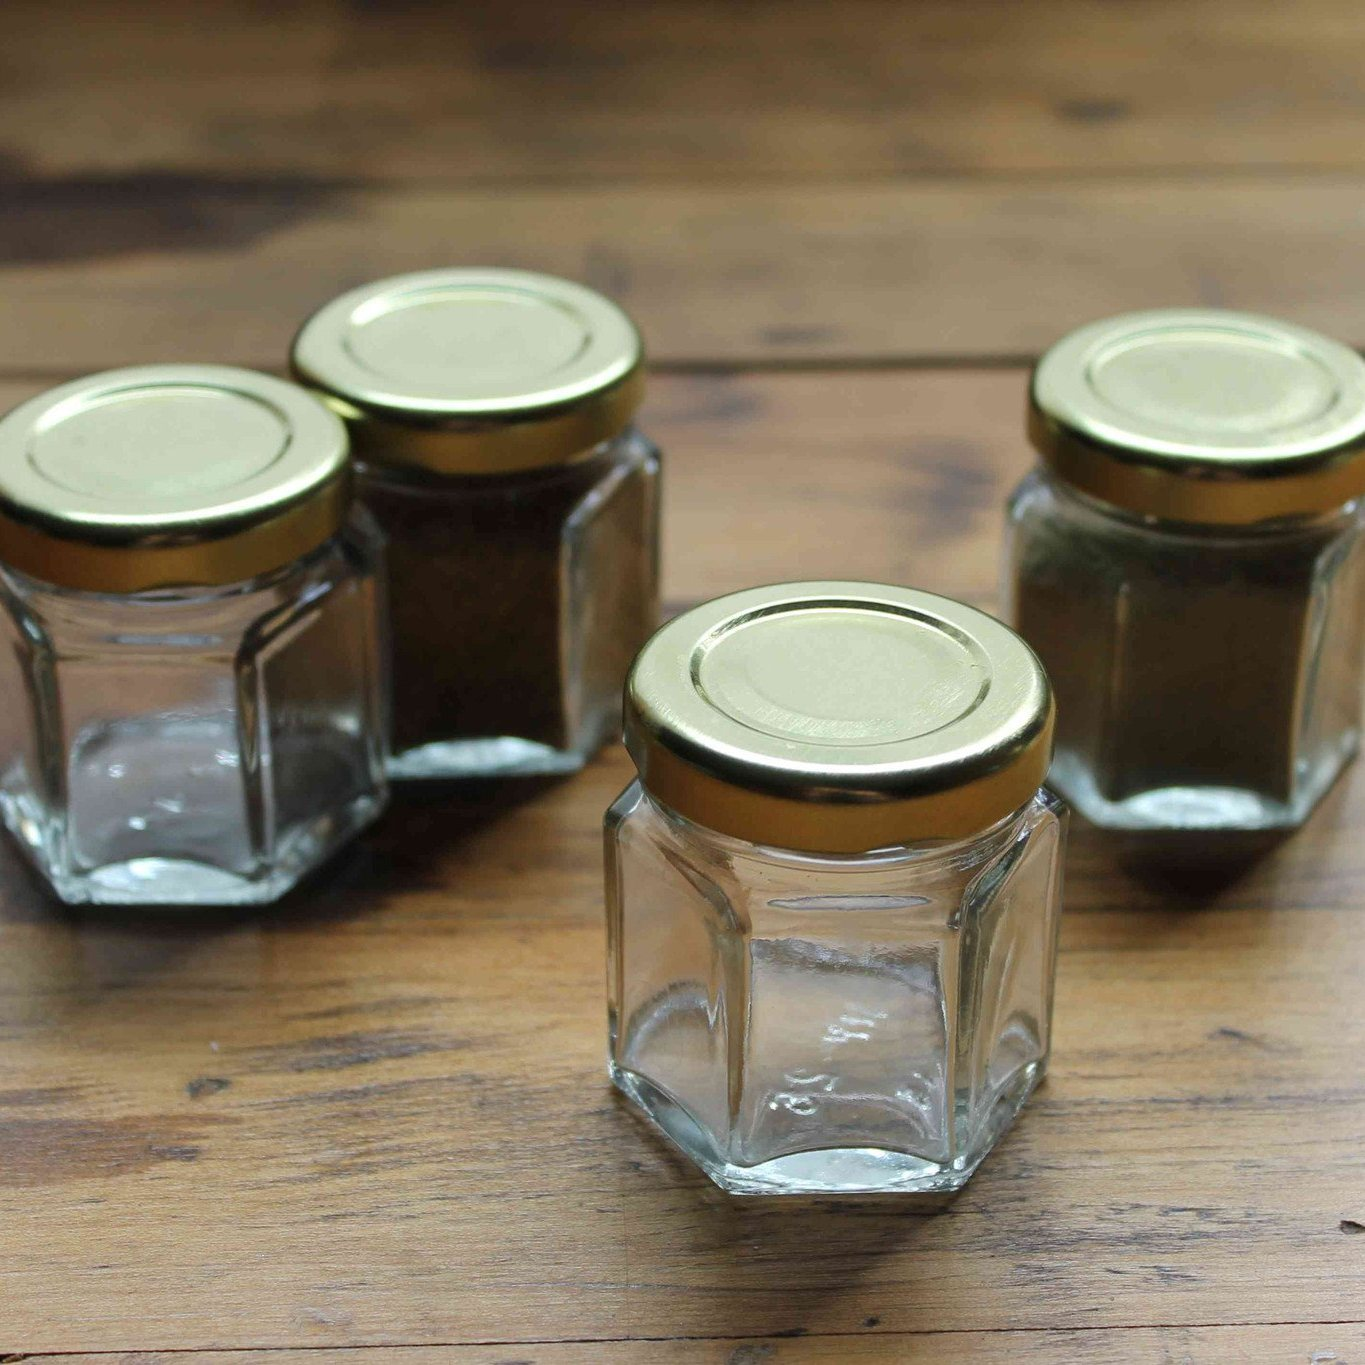 Hexagonal magnetic spice jar empty or full